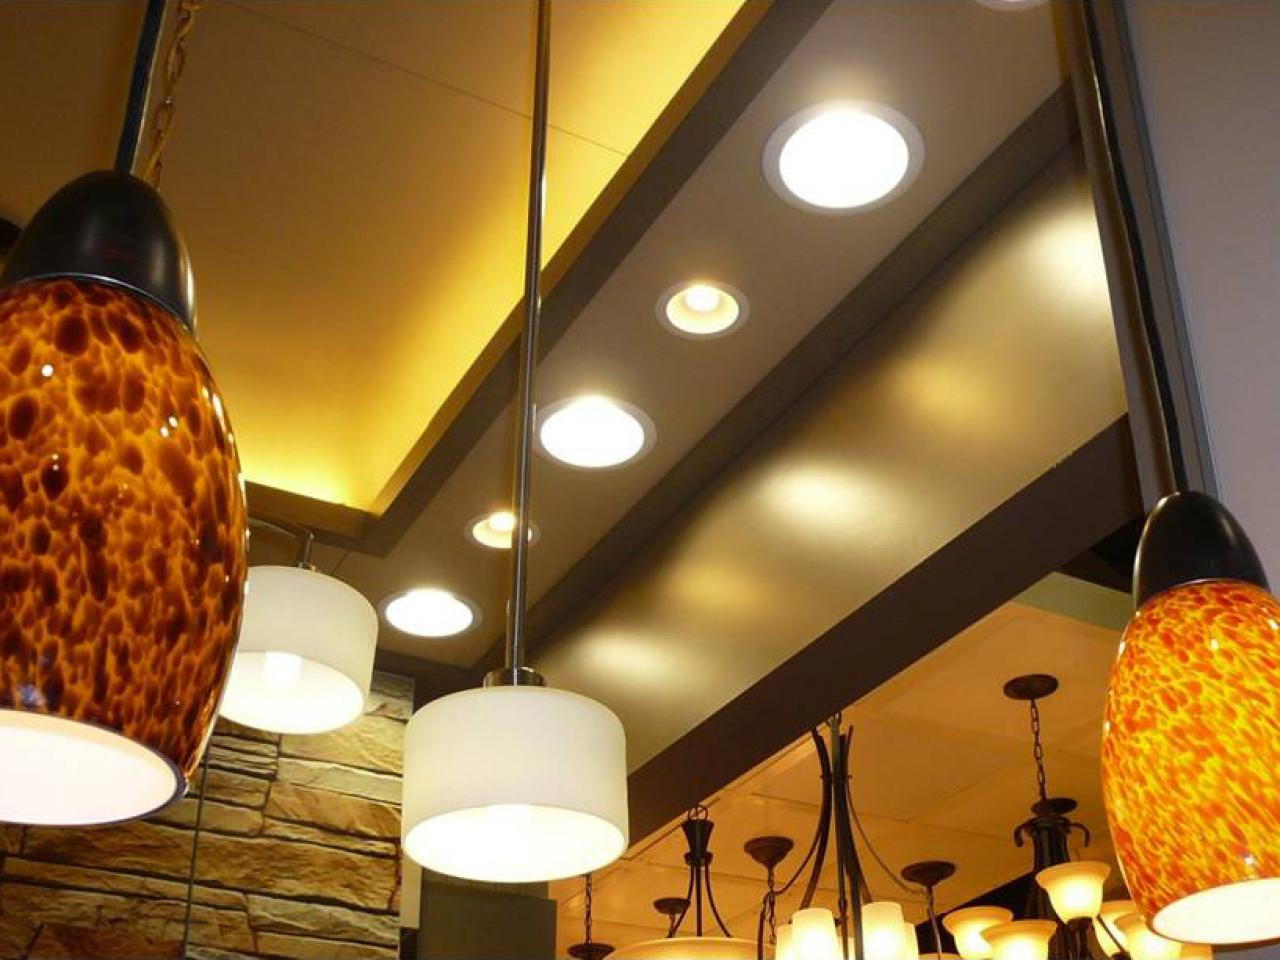 Types of lighting fixtures hgtv types of lighting fixtures arubaitofo Image collections